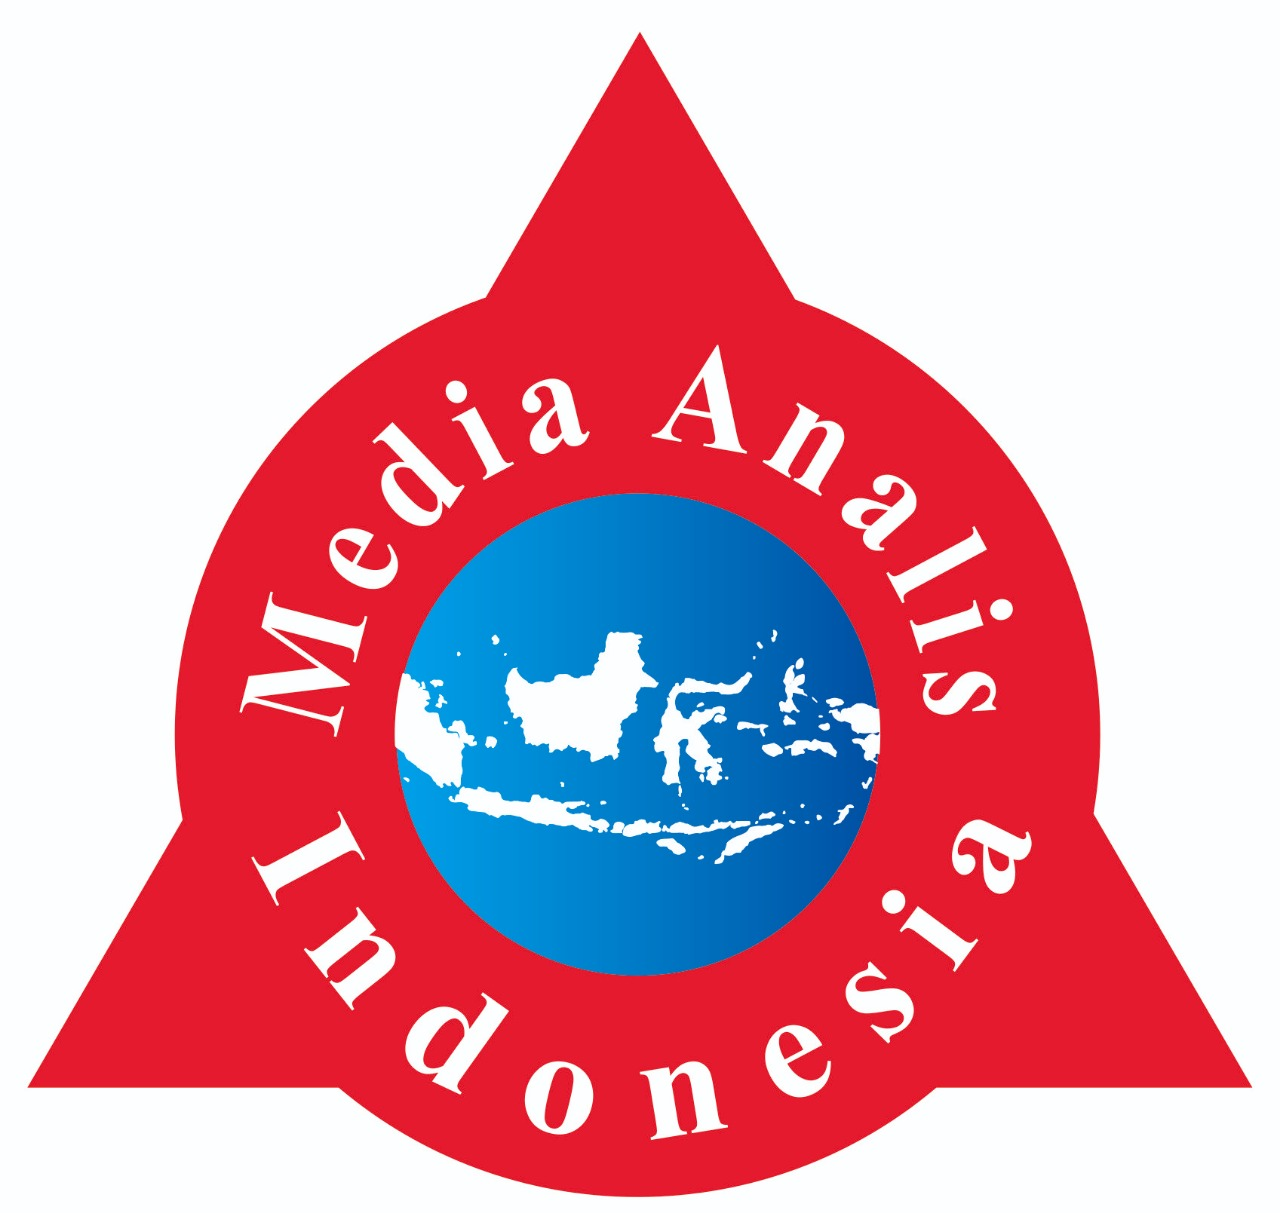 MEDIA ANALIS INDONESIA